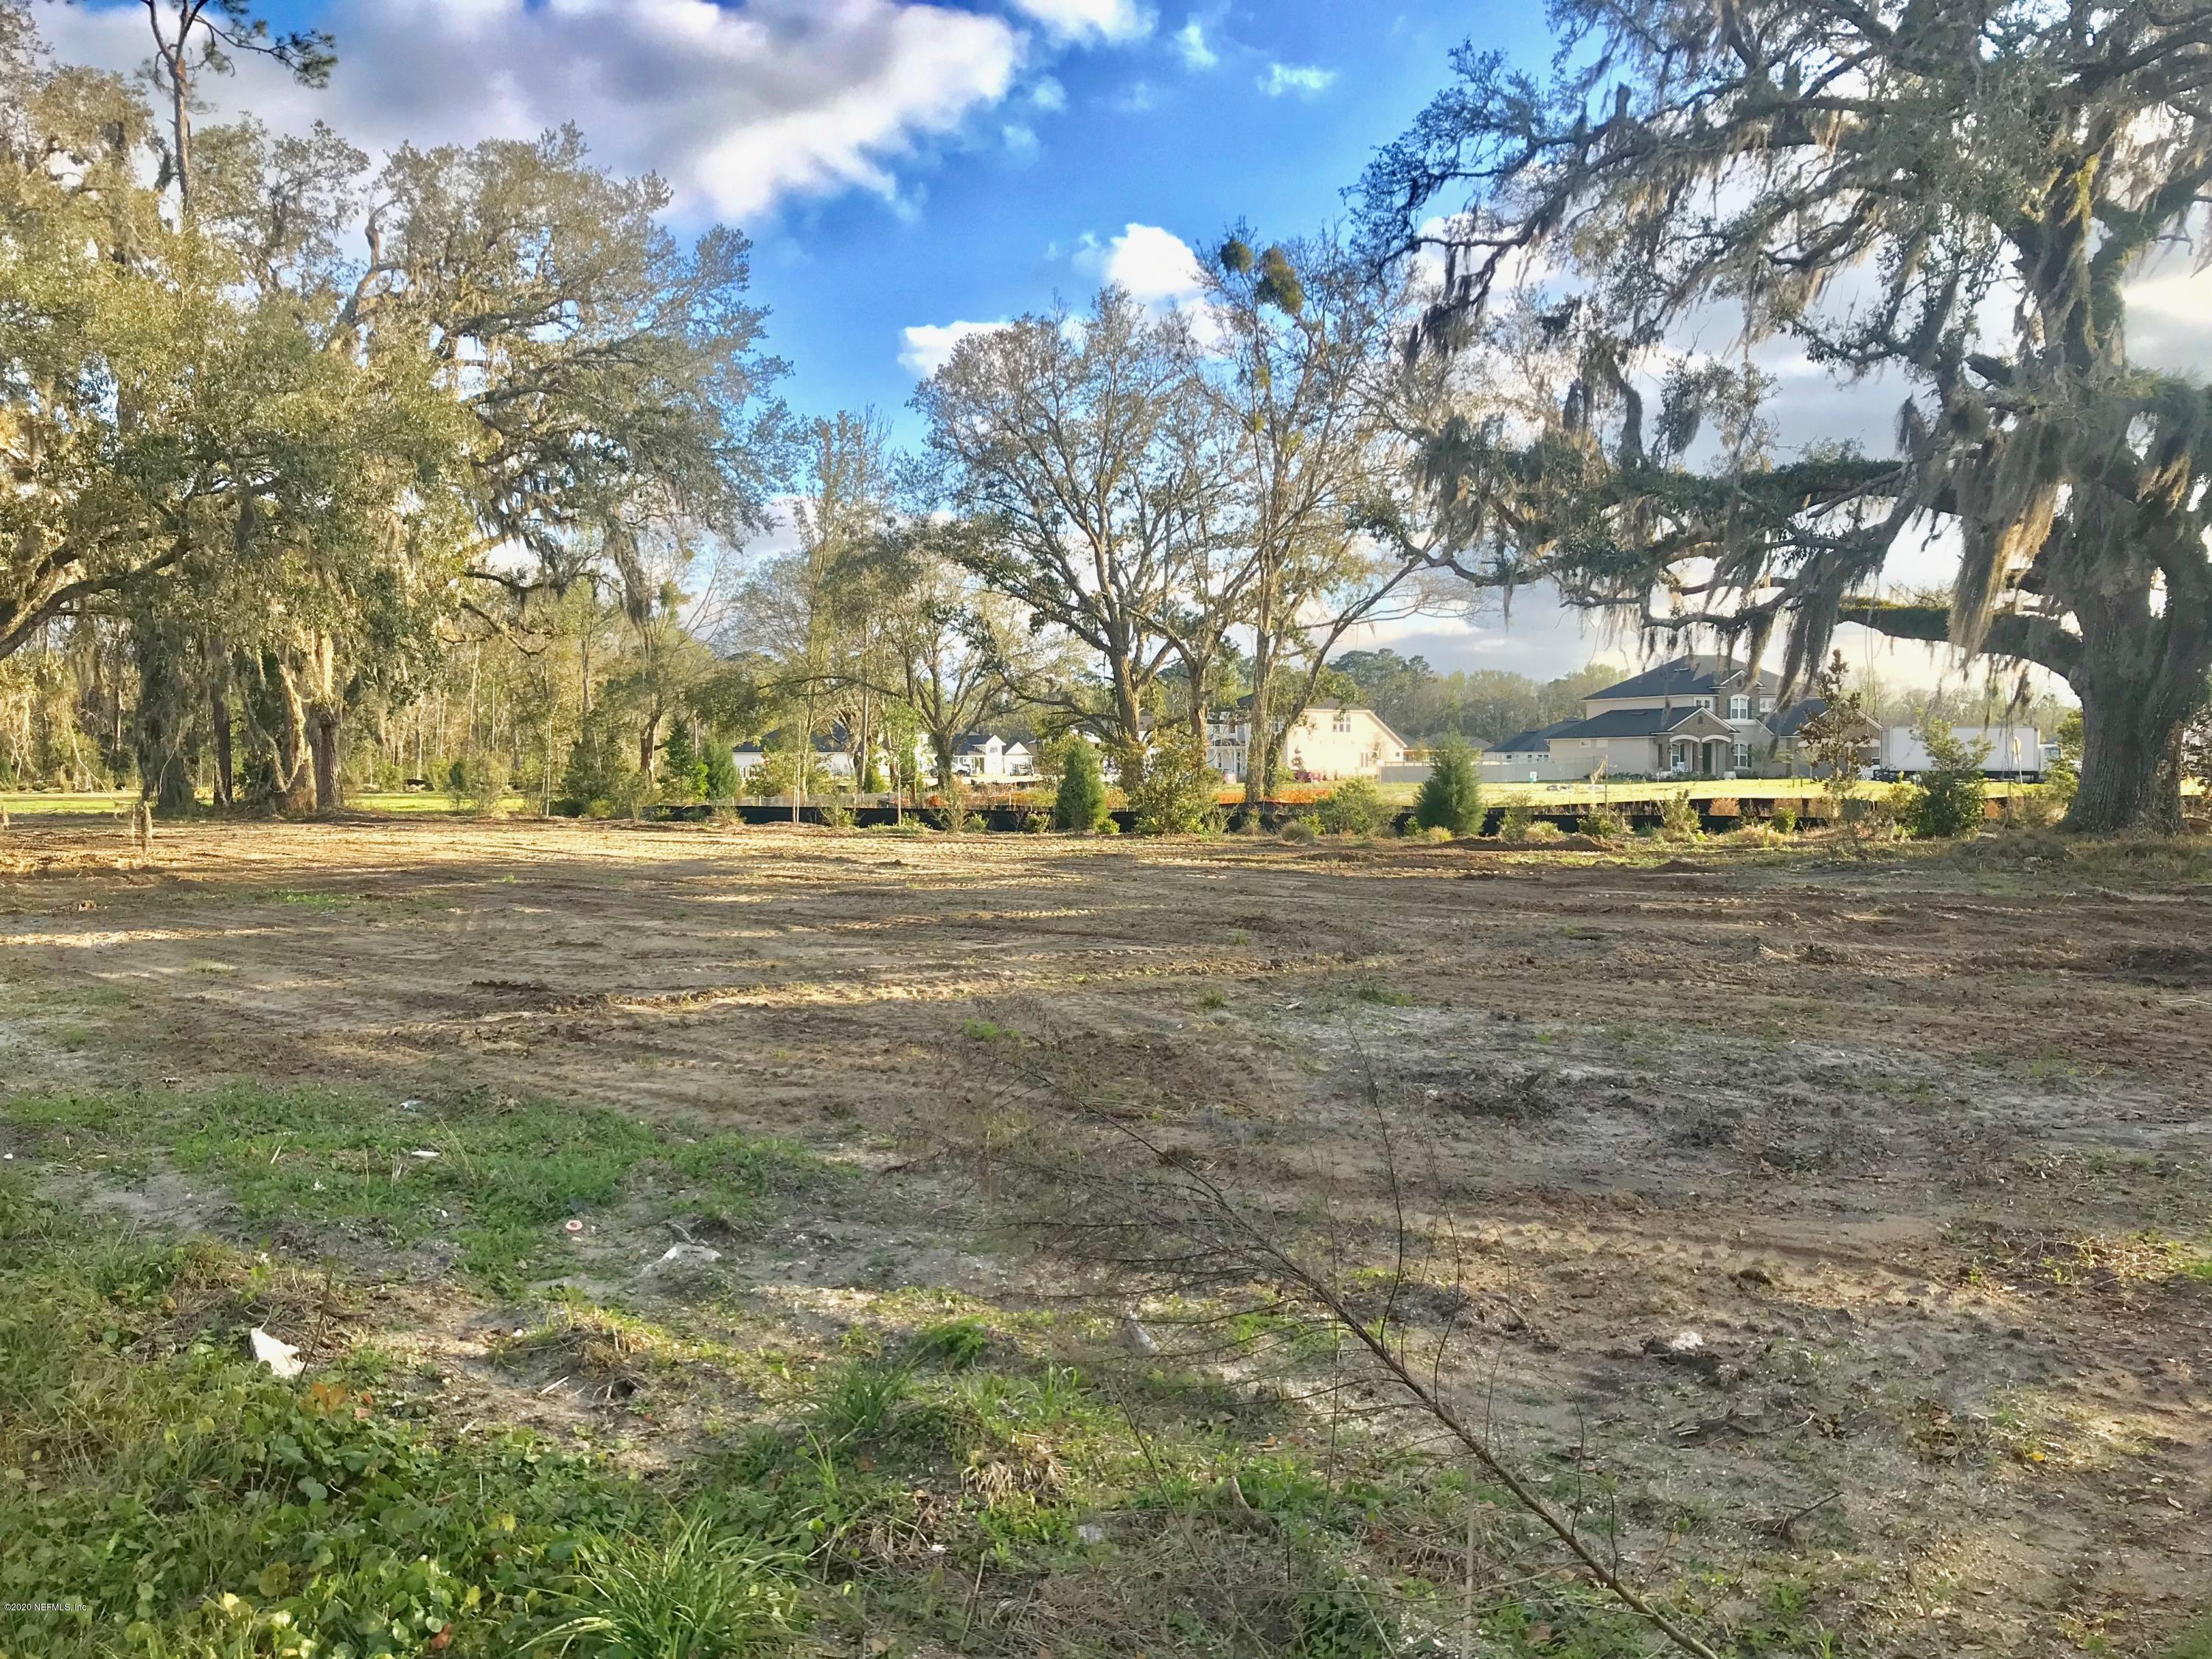 6465 COUNTY ROAD 16 A, ST AUGUSTINE, FLORIDA 32092, ,Vacant land,For sale,COUNTY ROAD 16 A,1038790